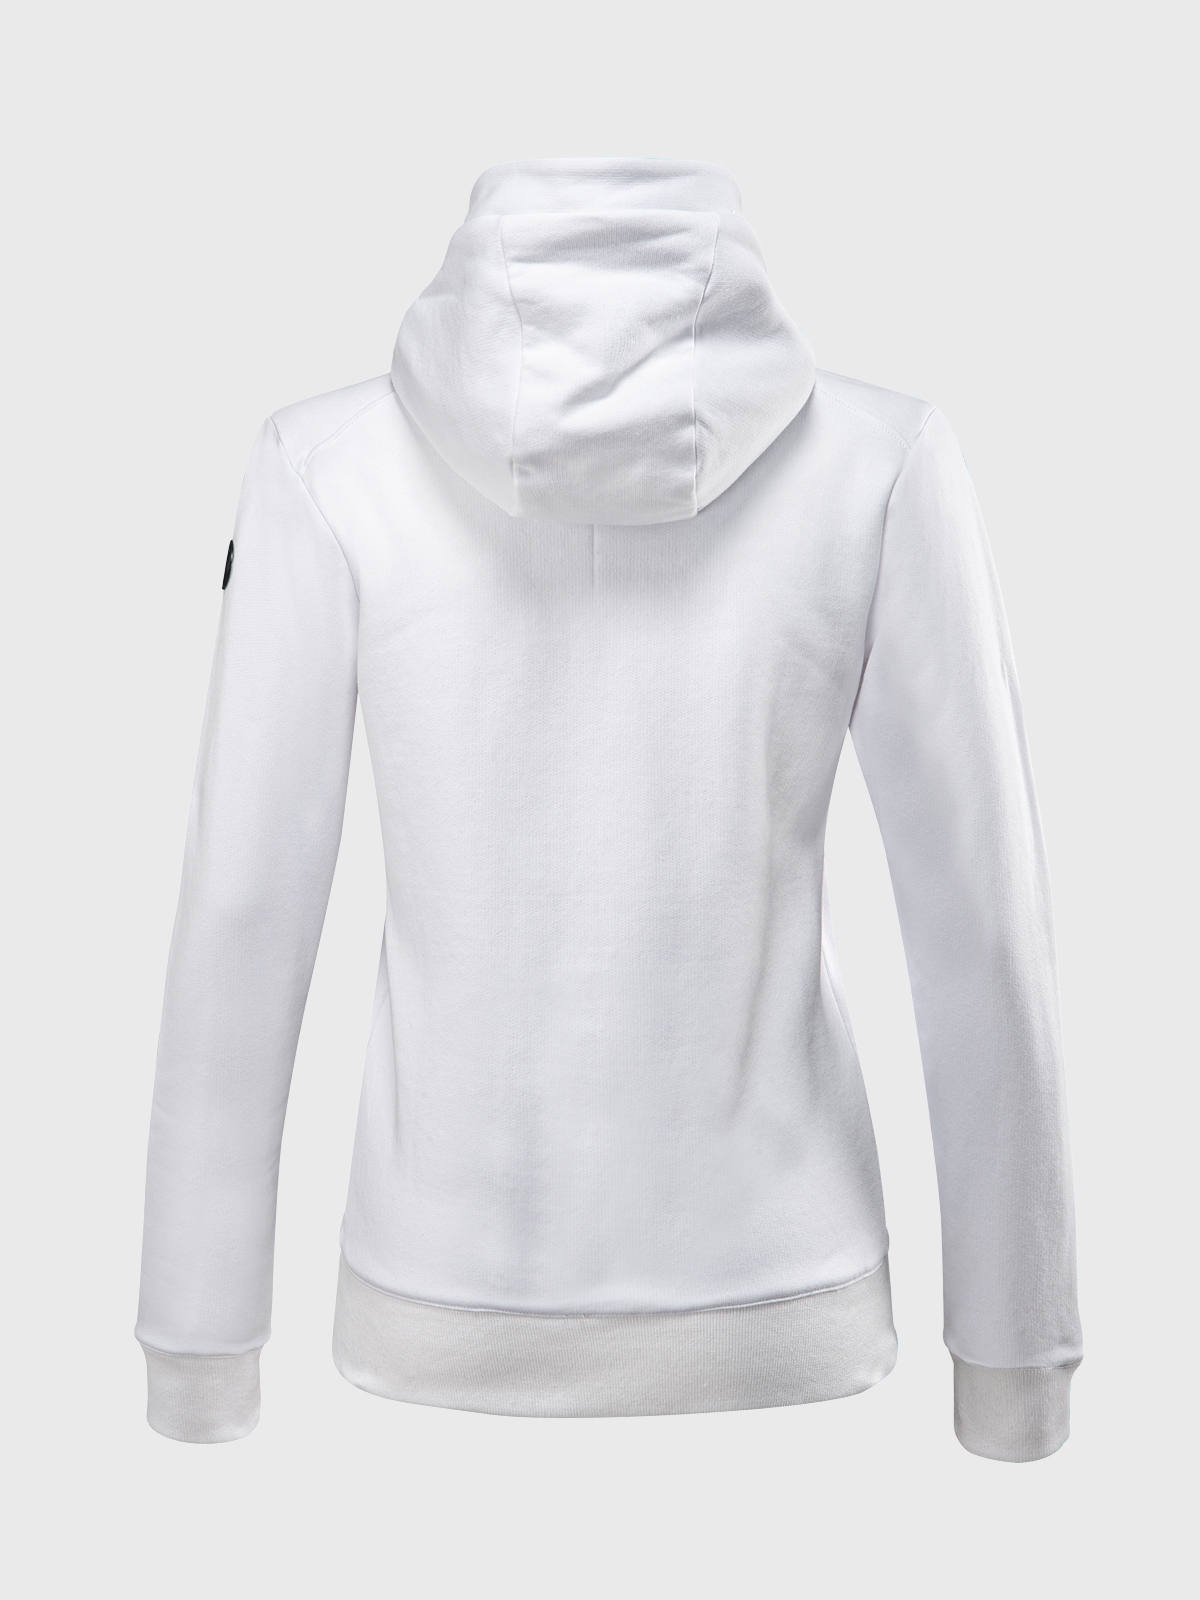 EQODE WOMEN'S FULL-ZIP FLEECE HOODIE 6